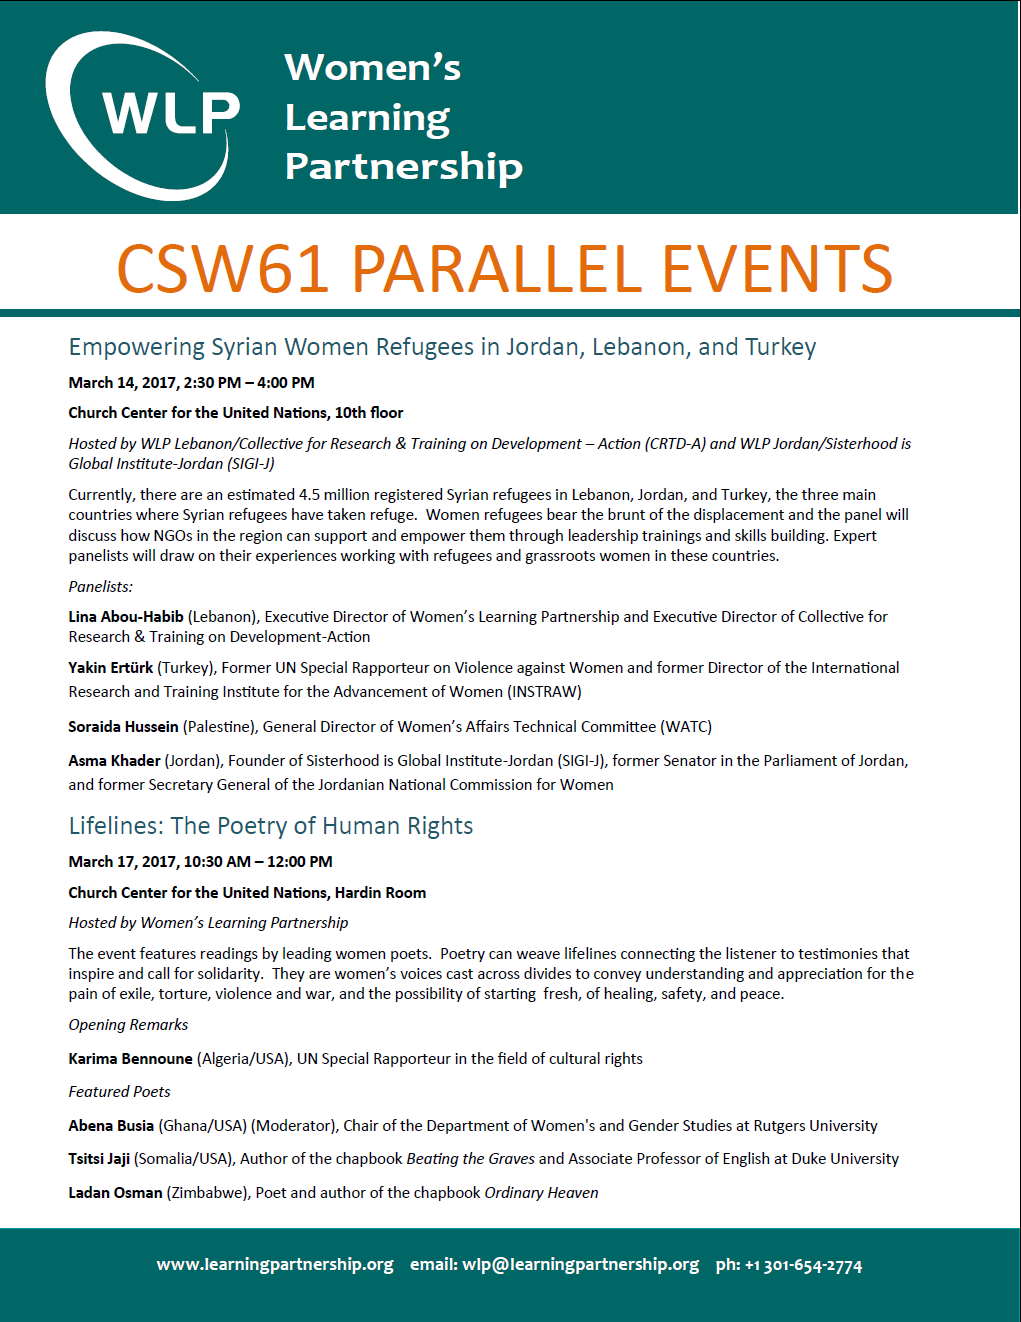 Lifelines parallel event CSW 61